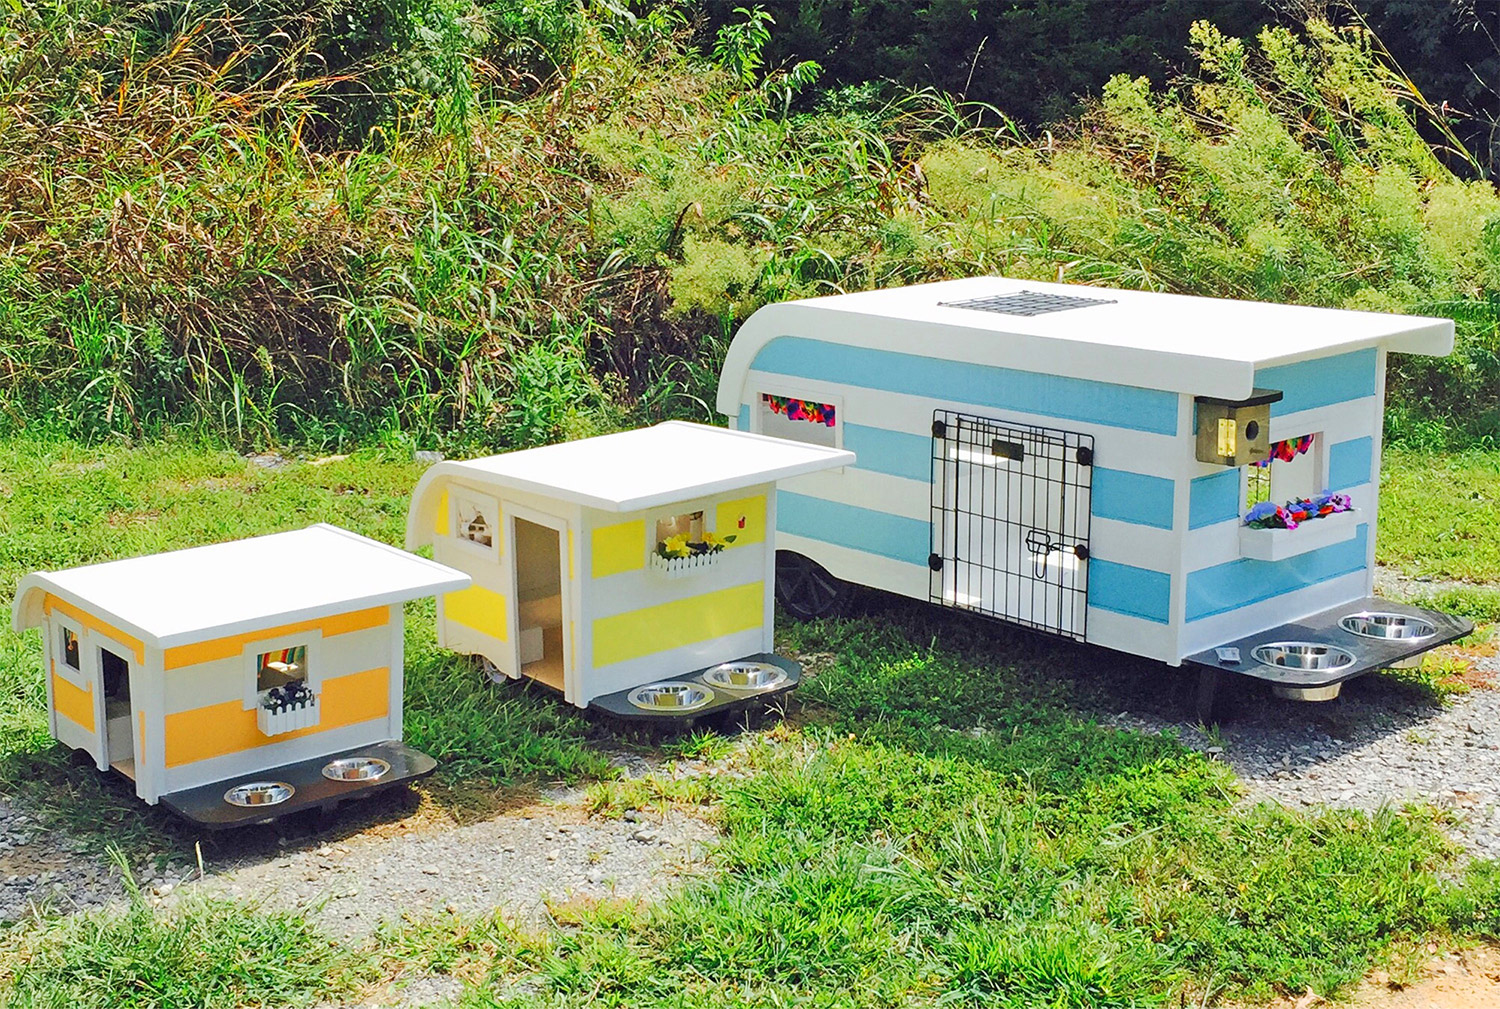 Camping Trailer Dog Beds - Canine Campers RV shaped dog bedsCamping Trailer Dog Beds - Canine Campers RV shaped dog beds